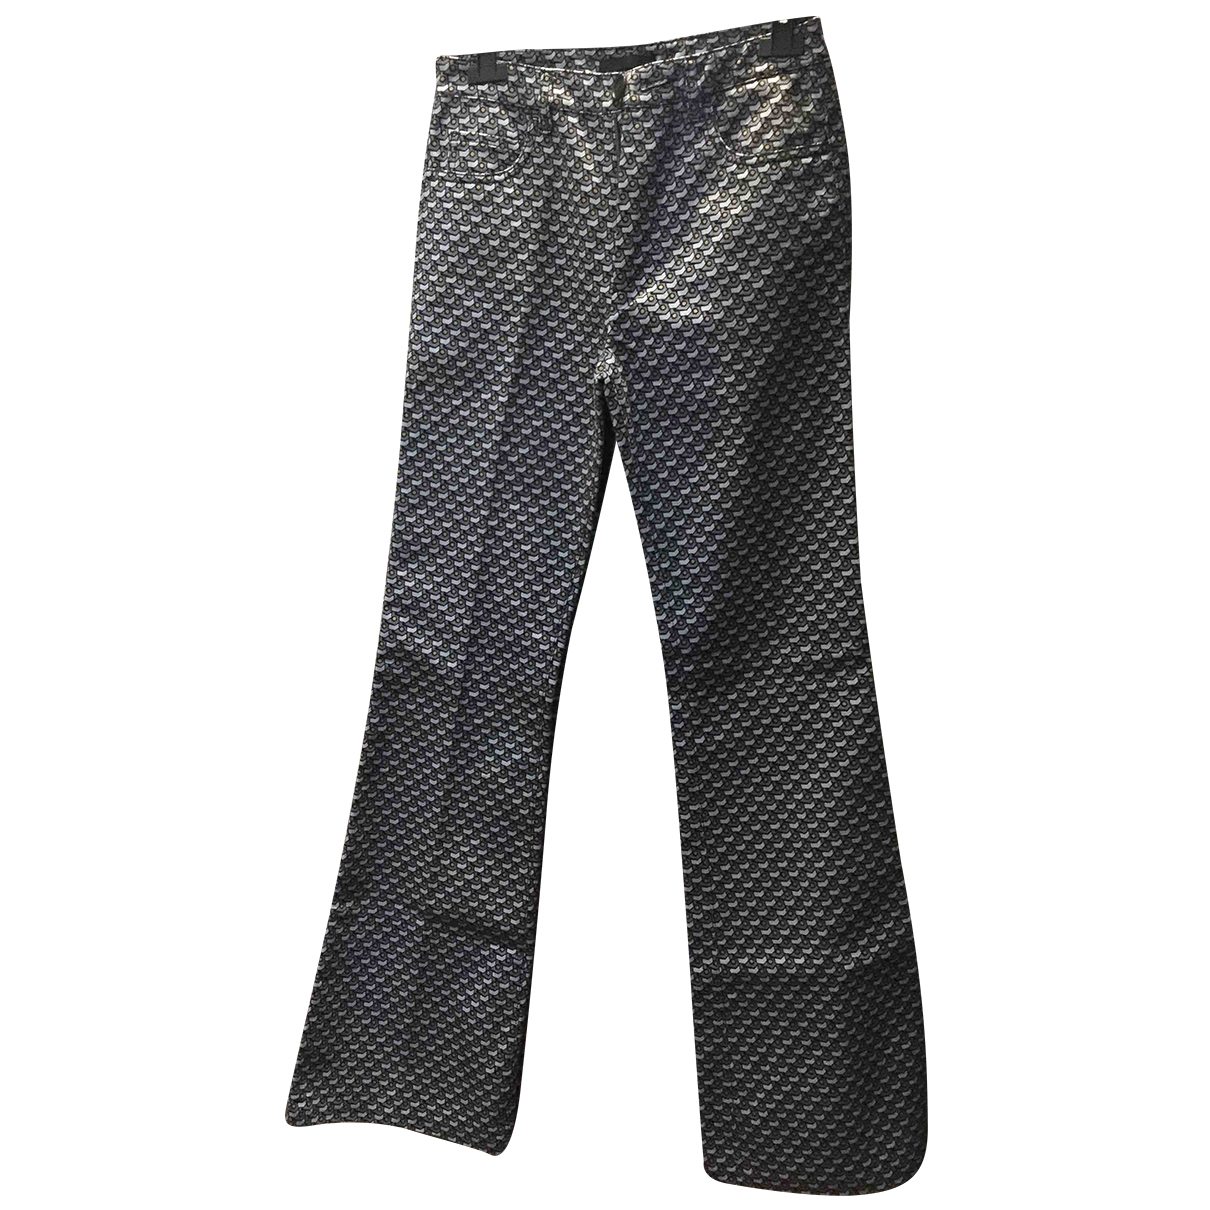 Prada \N Multicolour Denim - Jeans Trousers for Women 40 IT